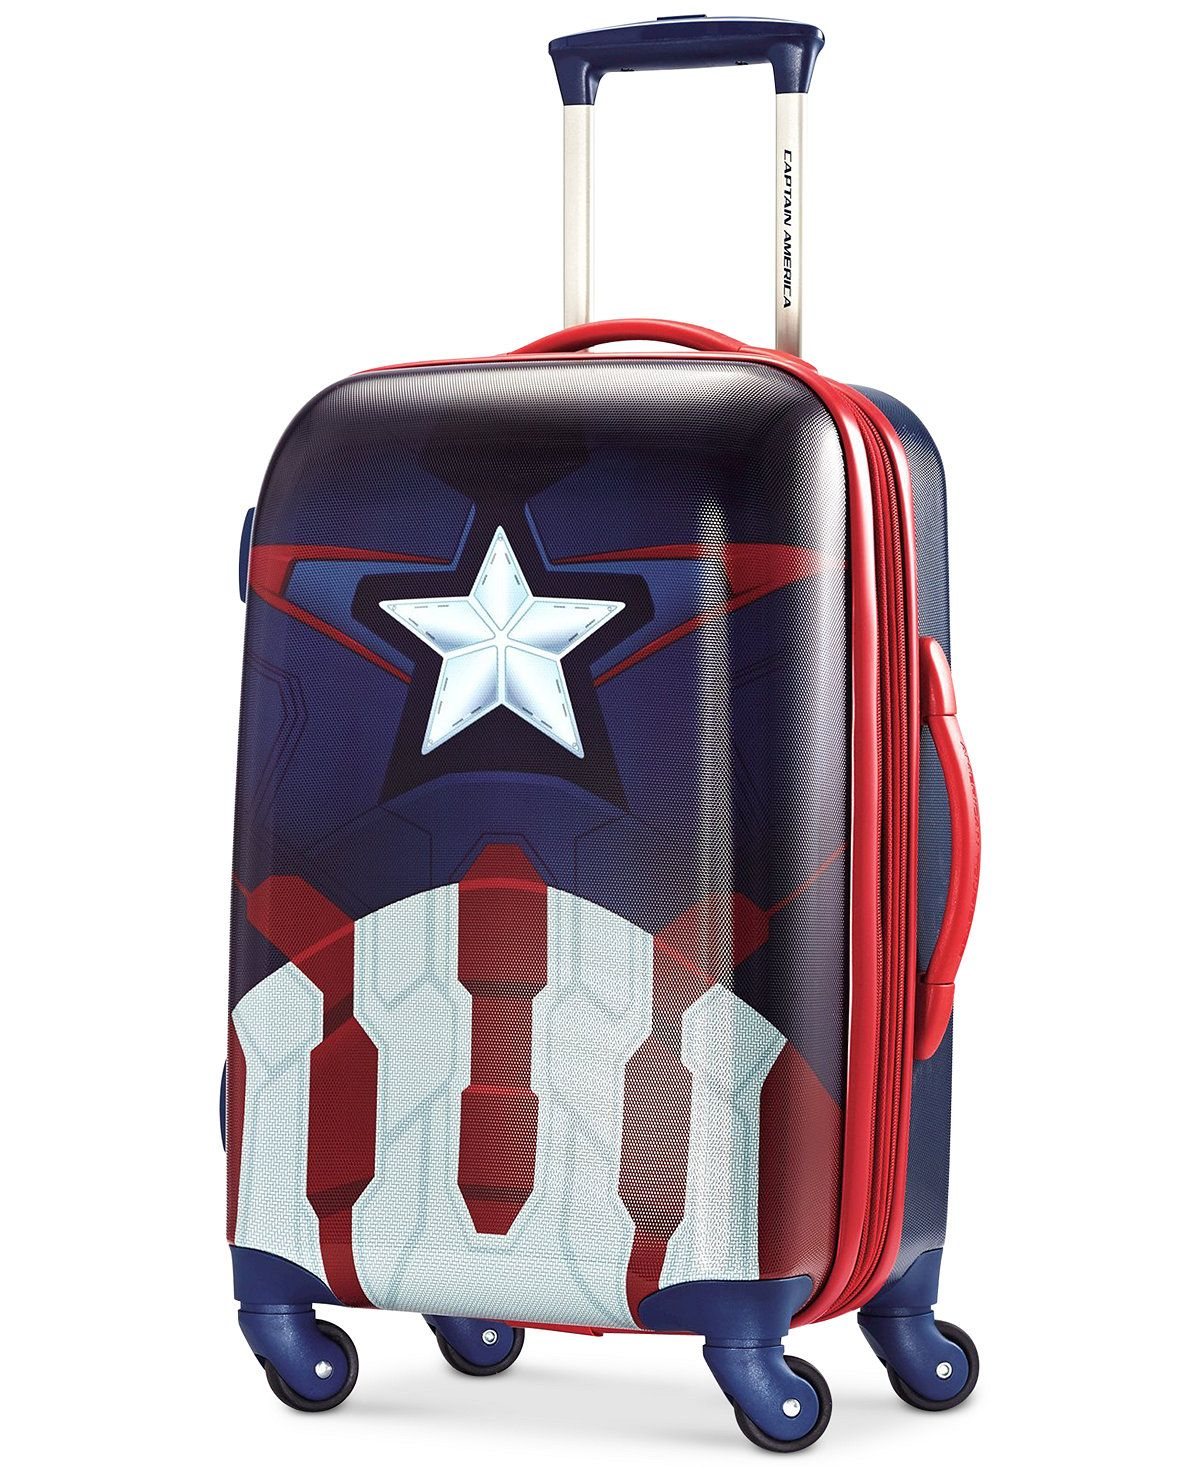 Marvel Captain America 21 Hardside Spinner Suitcase By American Tourister All Luggage Luggage Captain America Luggage Marvel Luggage American Tourister